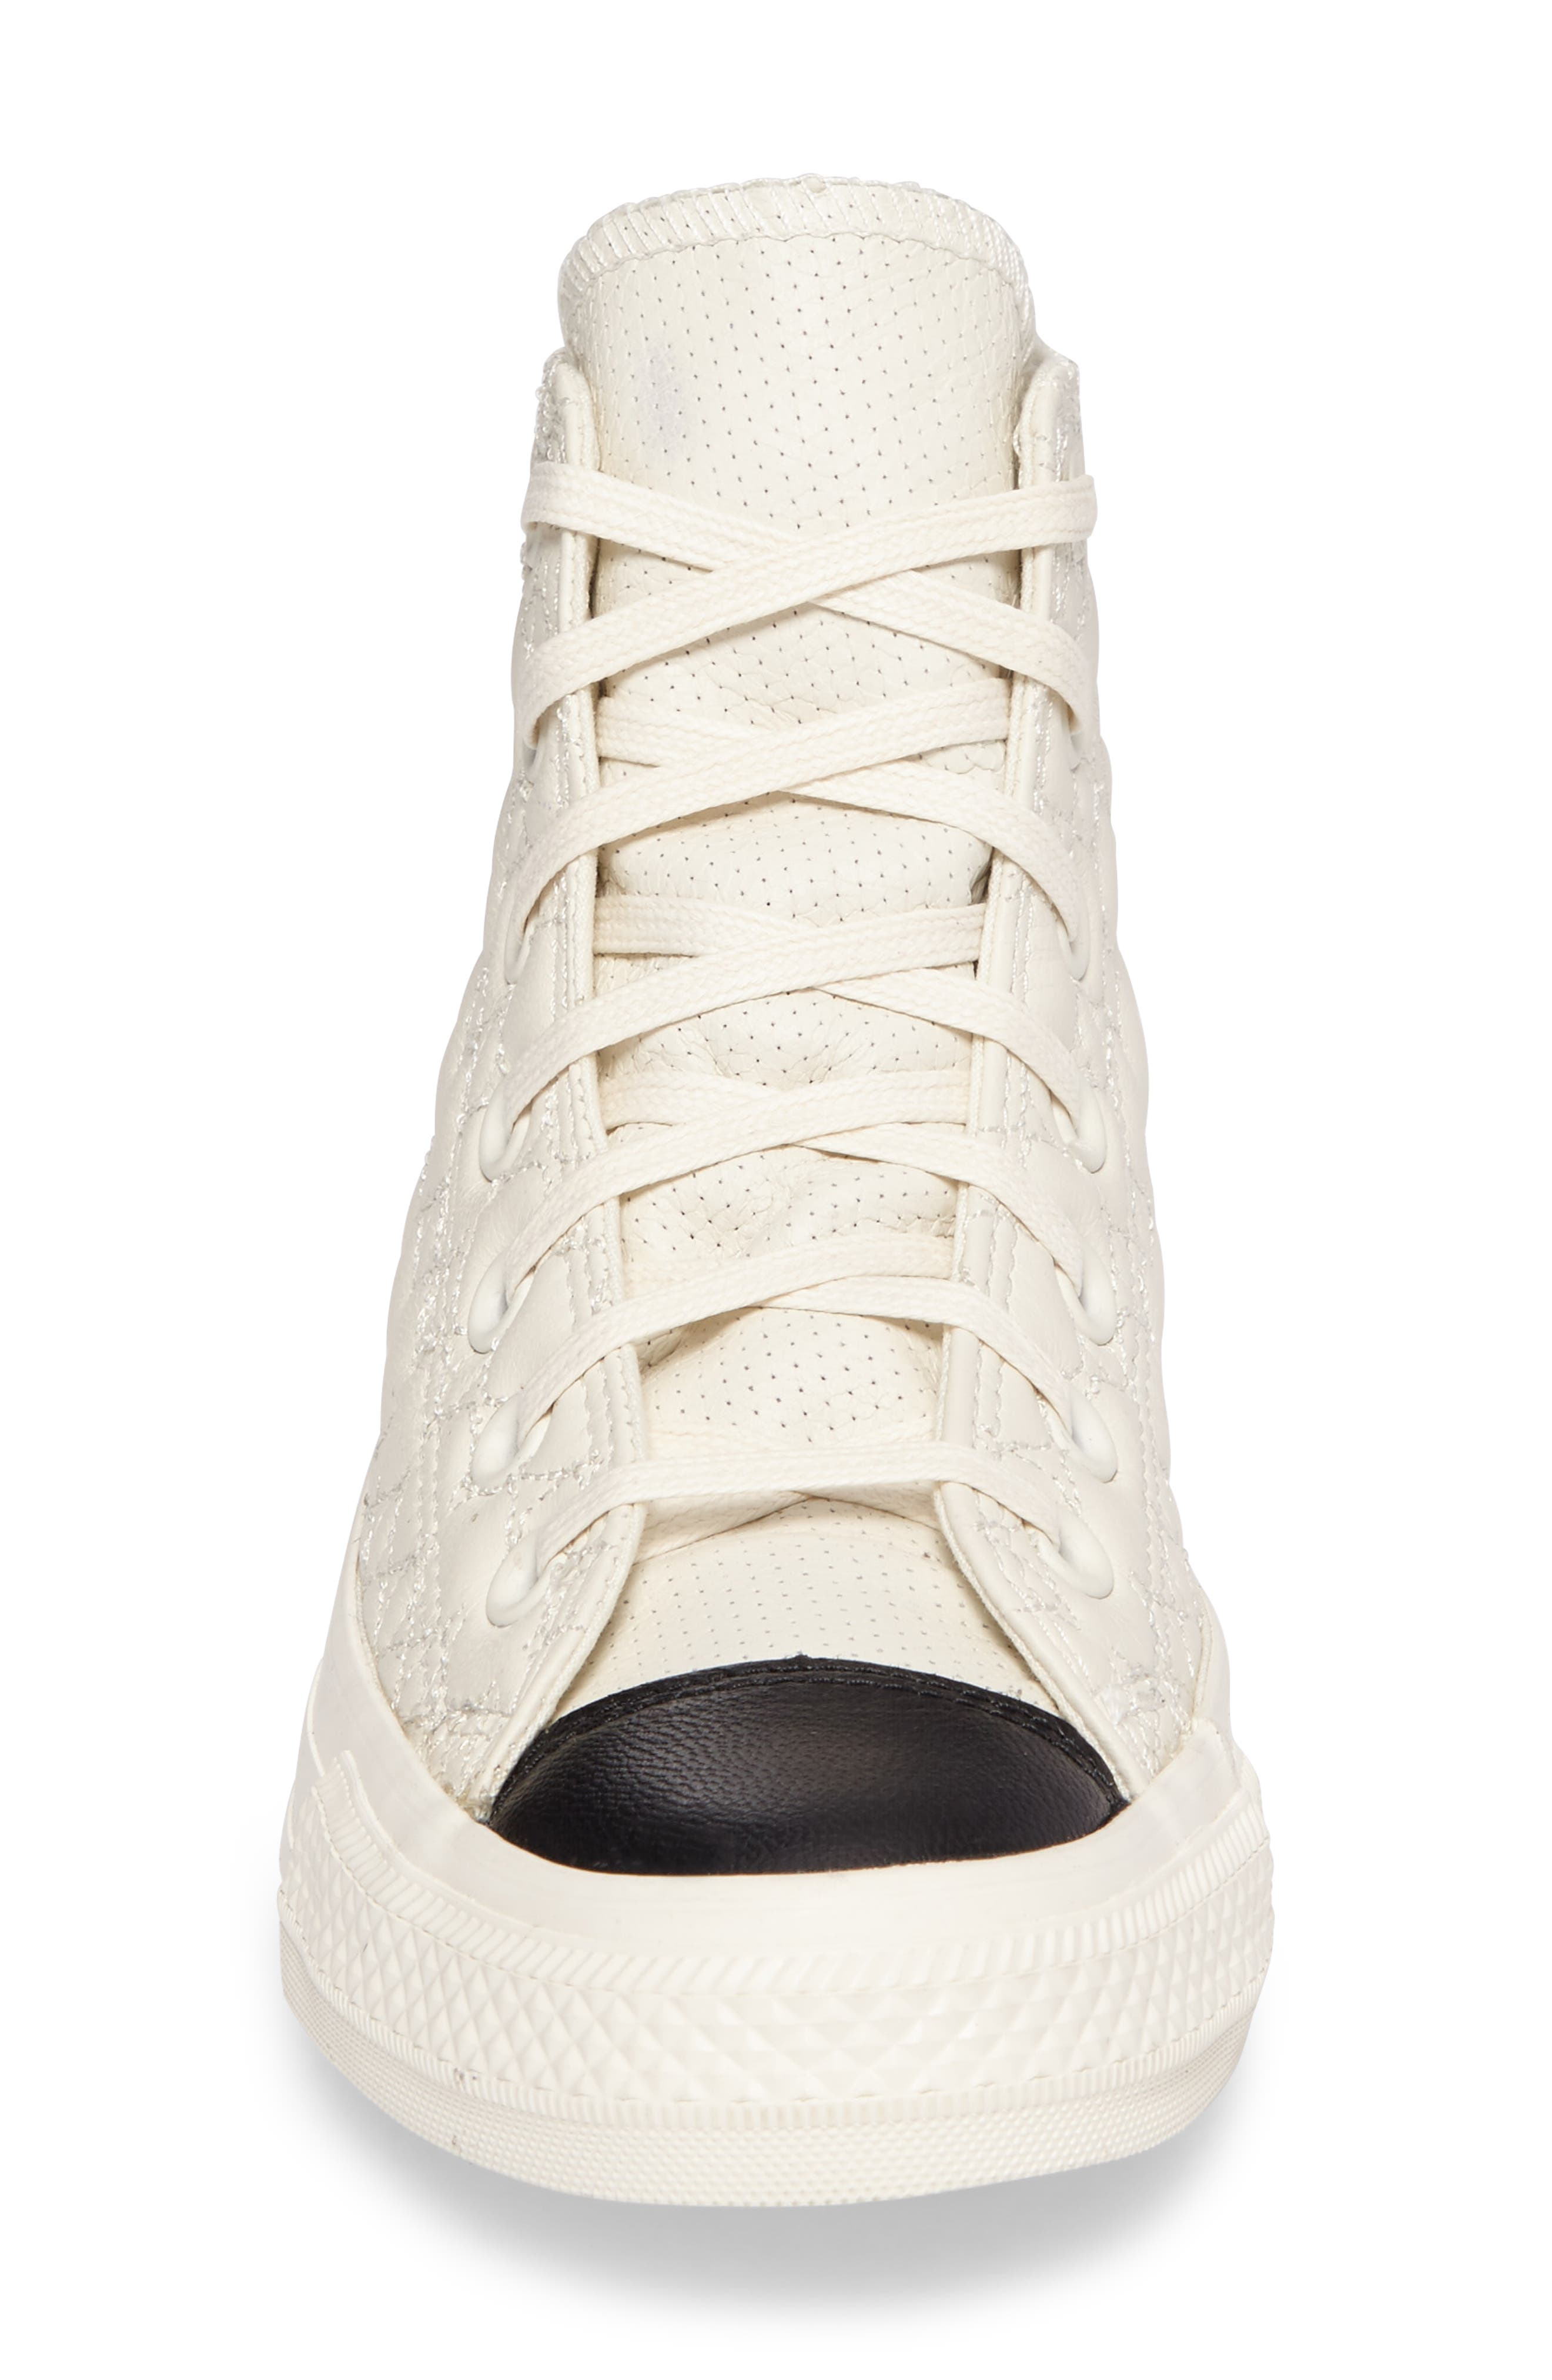 All Star<sup>®</sup> Quilted High Top Sneaker,                             Alternate thumbnail 4, color,                             Egret Leather